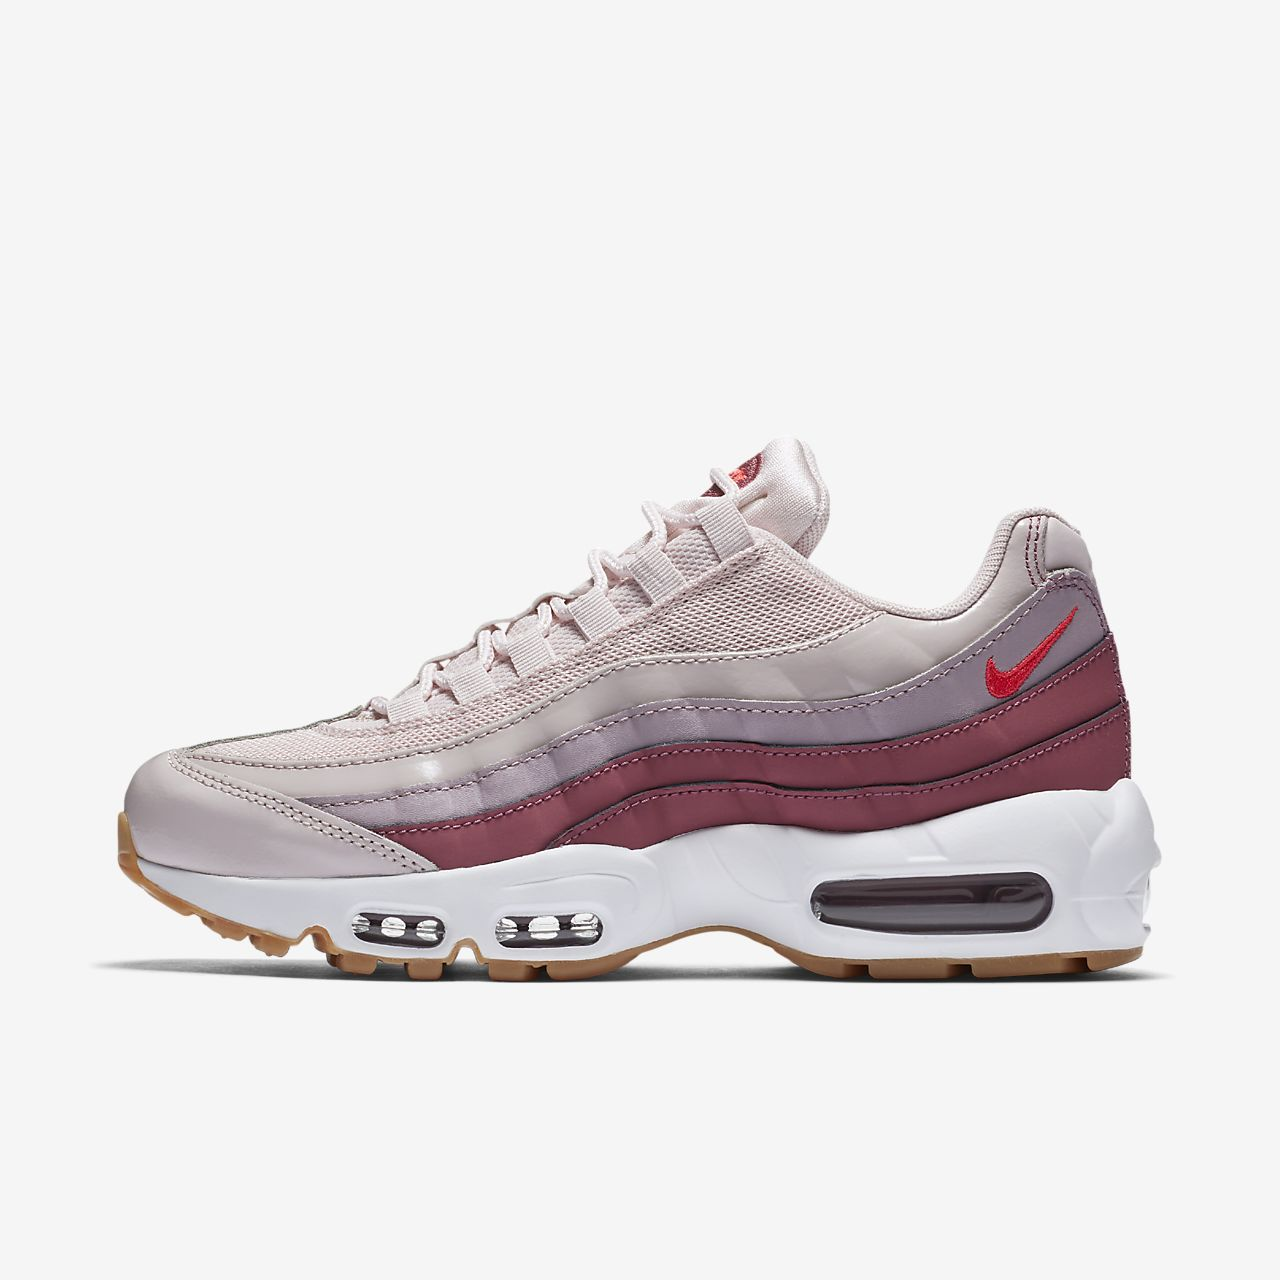 Nike Women's Air Max 95 Sneaker